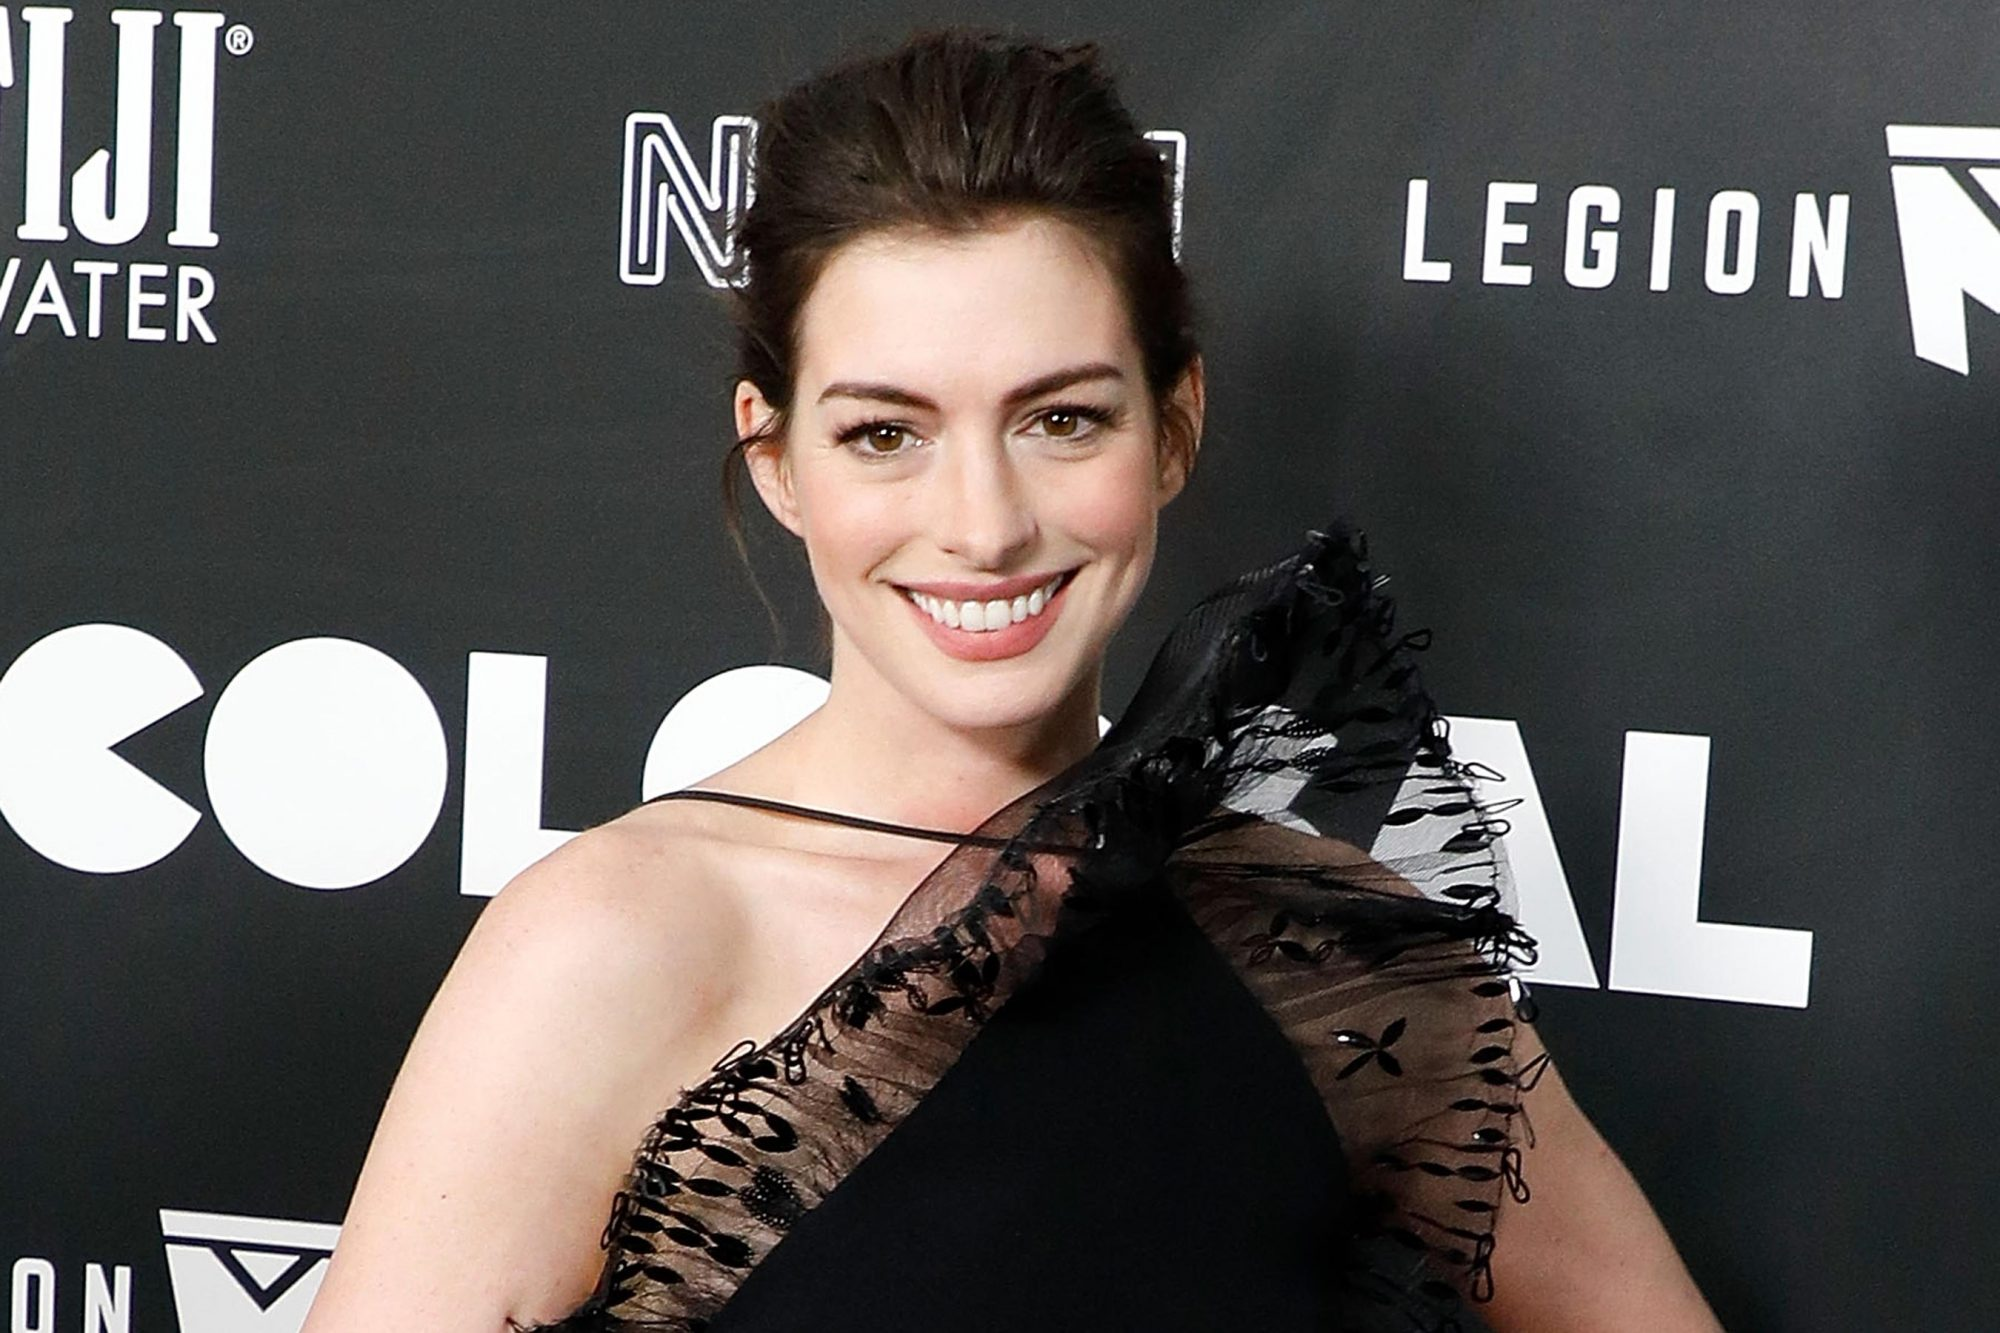 "NEW YORK, NY - MARCH 28: Actress Anne Hathaway attends the premiere of ""Colossal"" at AMC Lincoln Square Theater on March 28, 2017 in New York City. (Photo by Taylor Hill/Getty Images)"